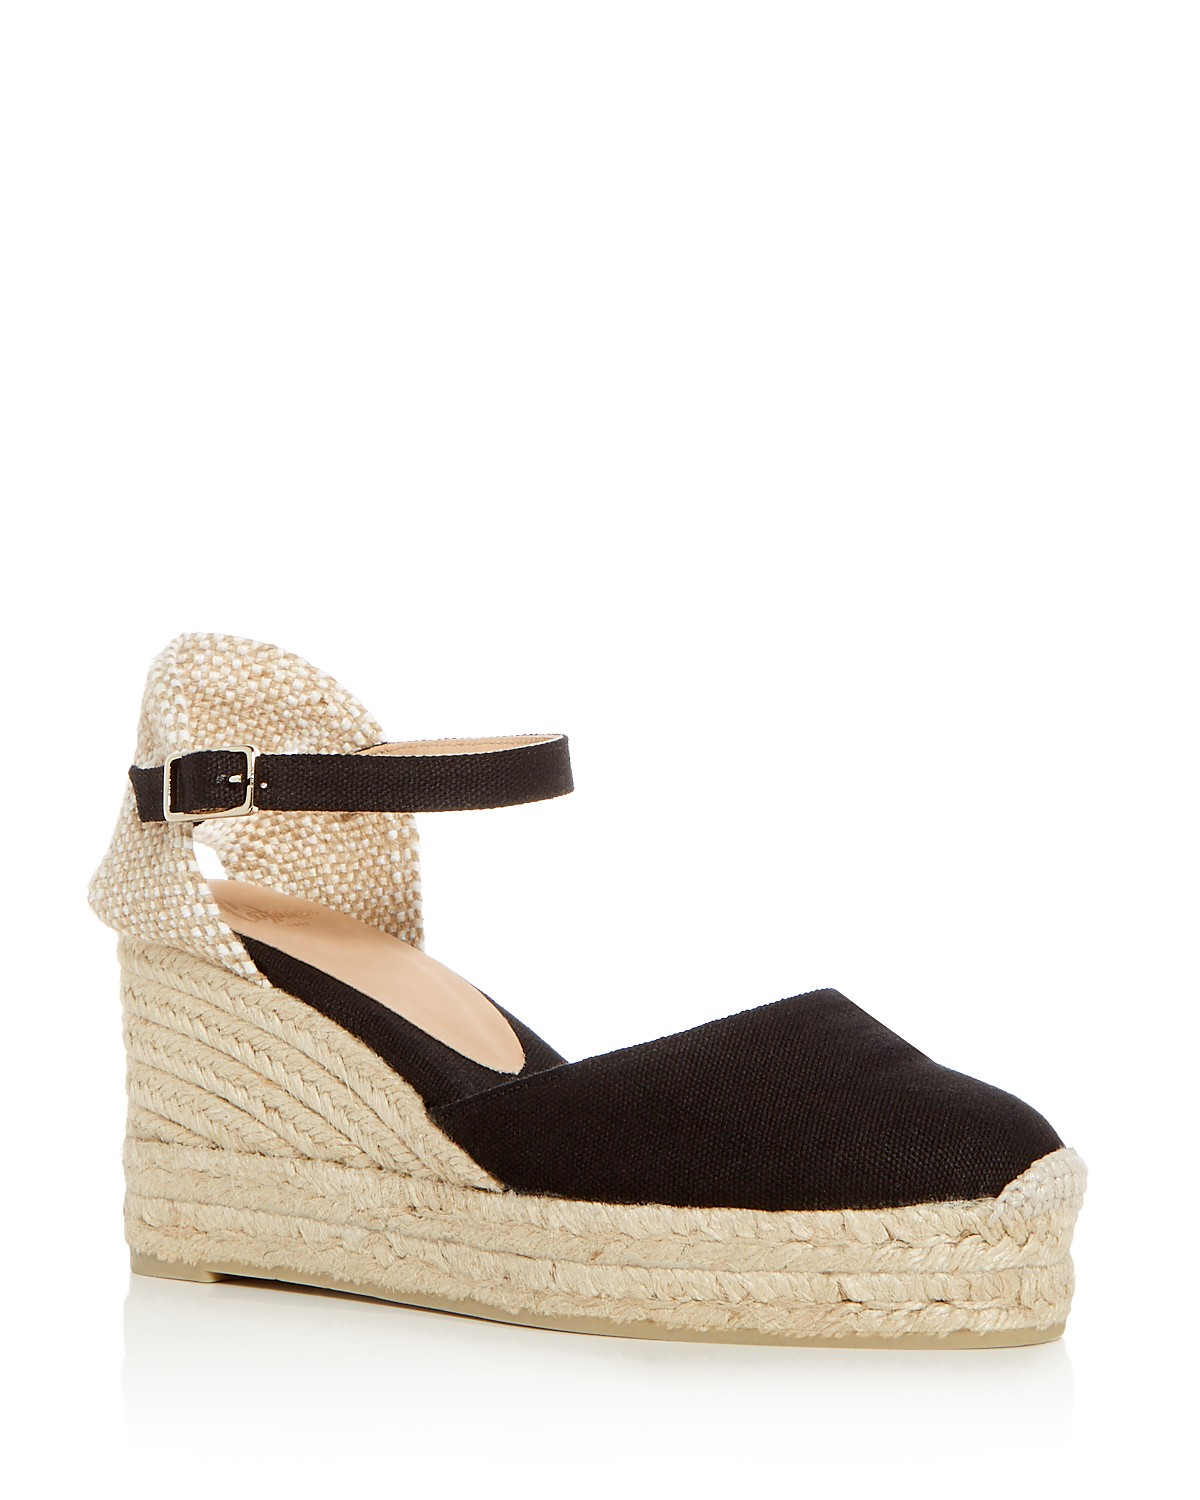 Castaner Ankle tie wedge espadrilles Cheap Sale Get To Buy Cheap Sale Wide Range Of LS4JQ4nWt